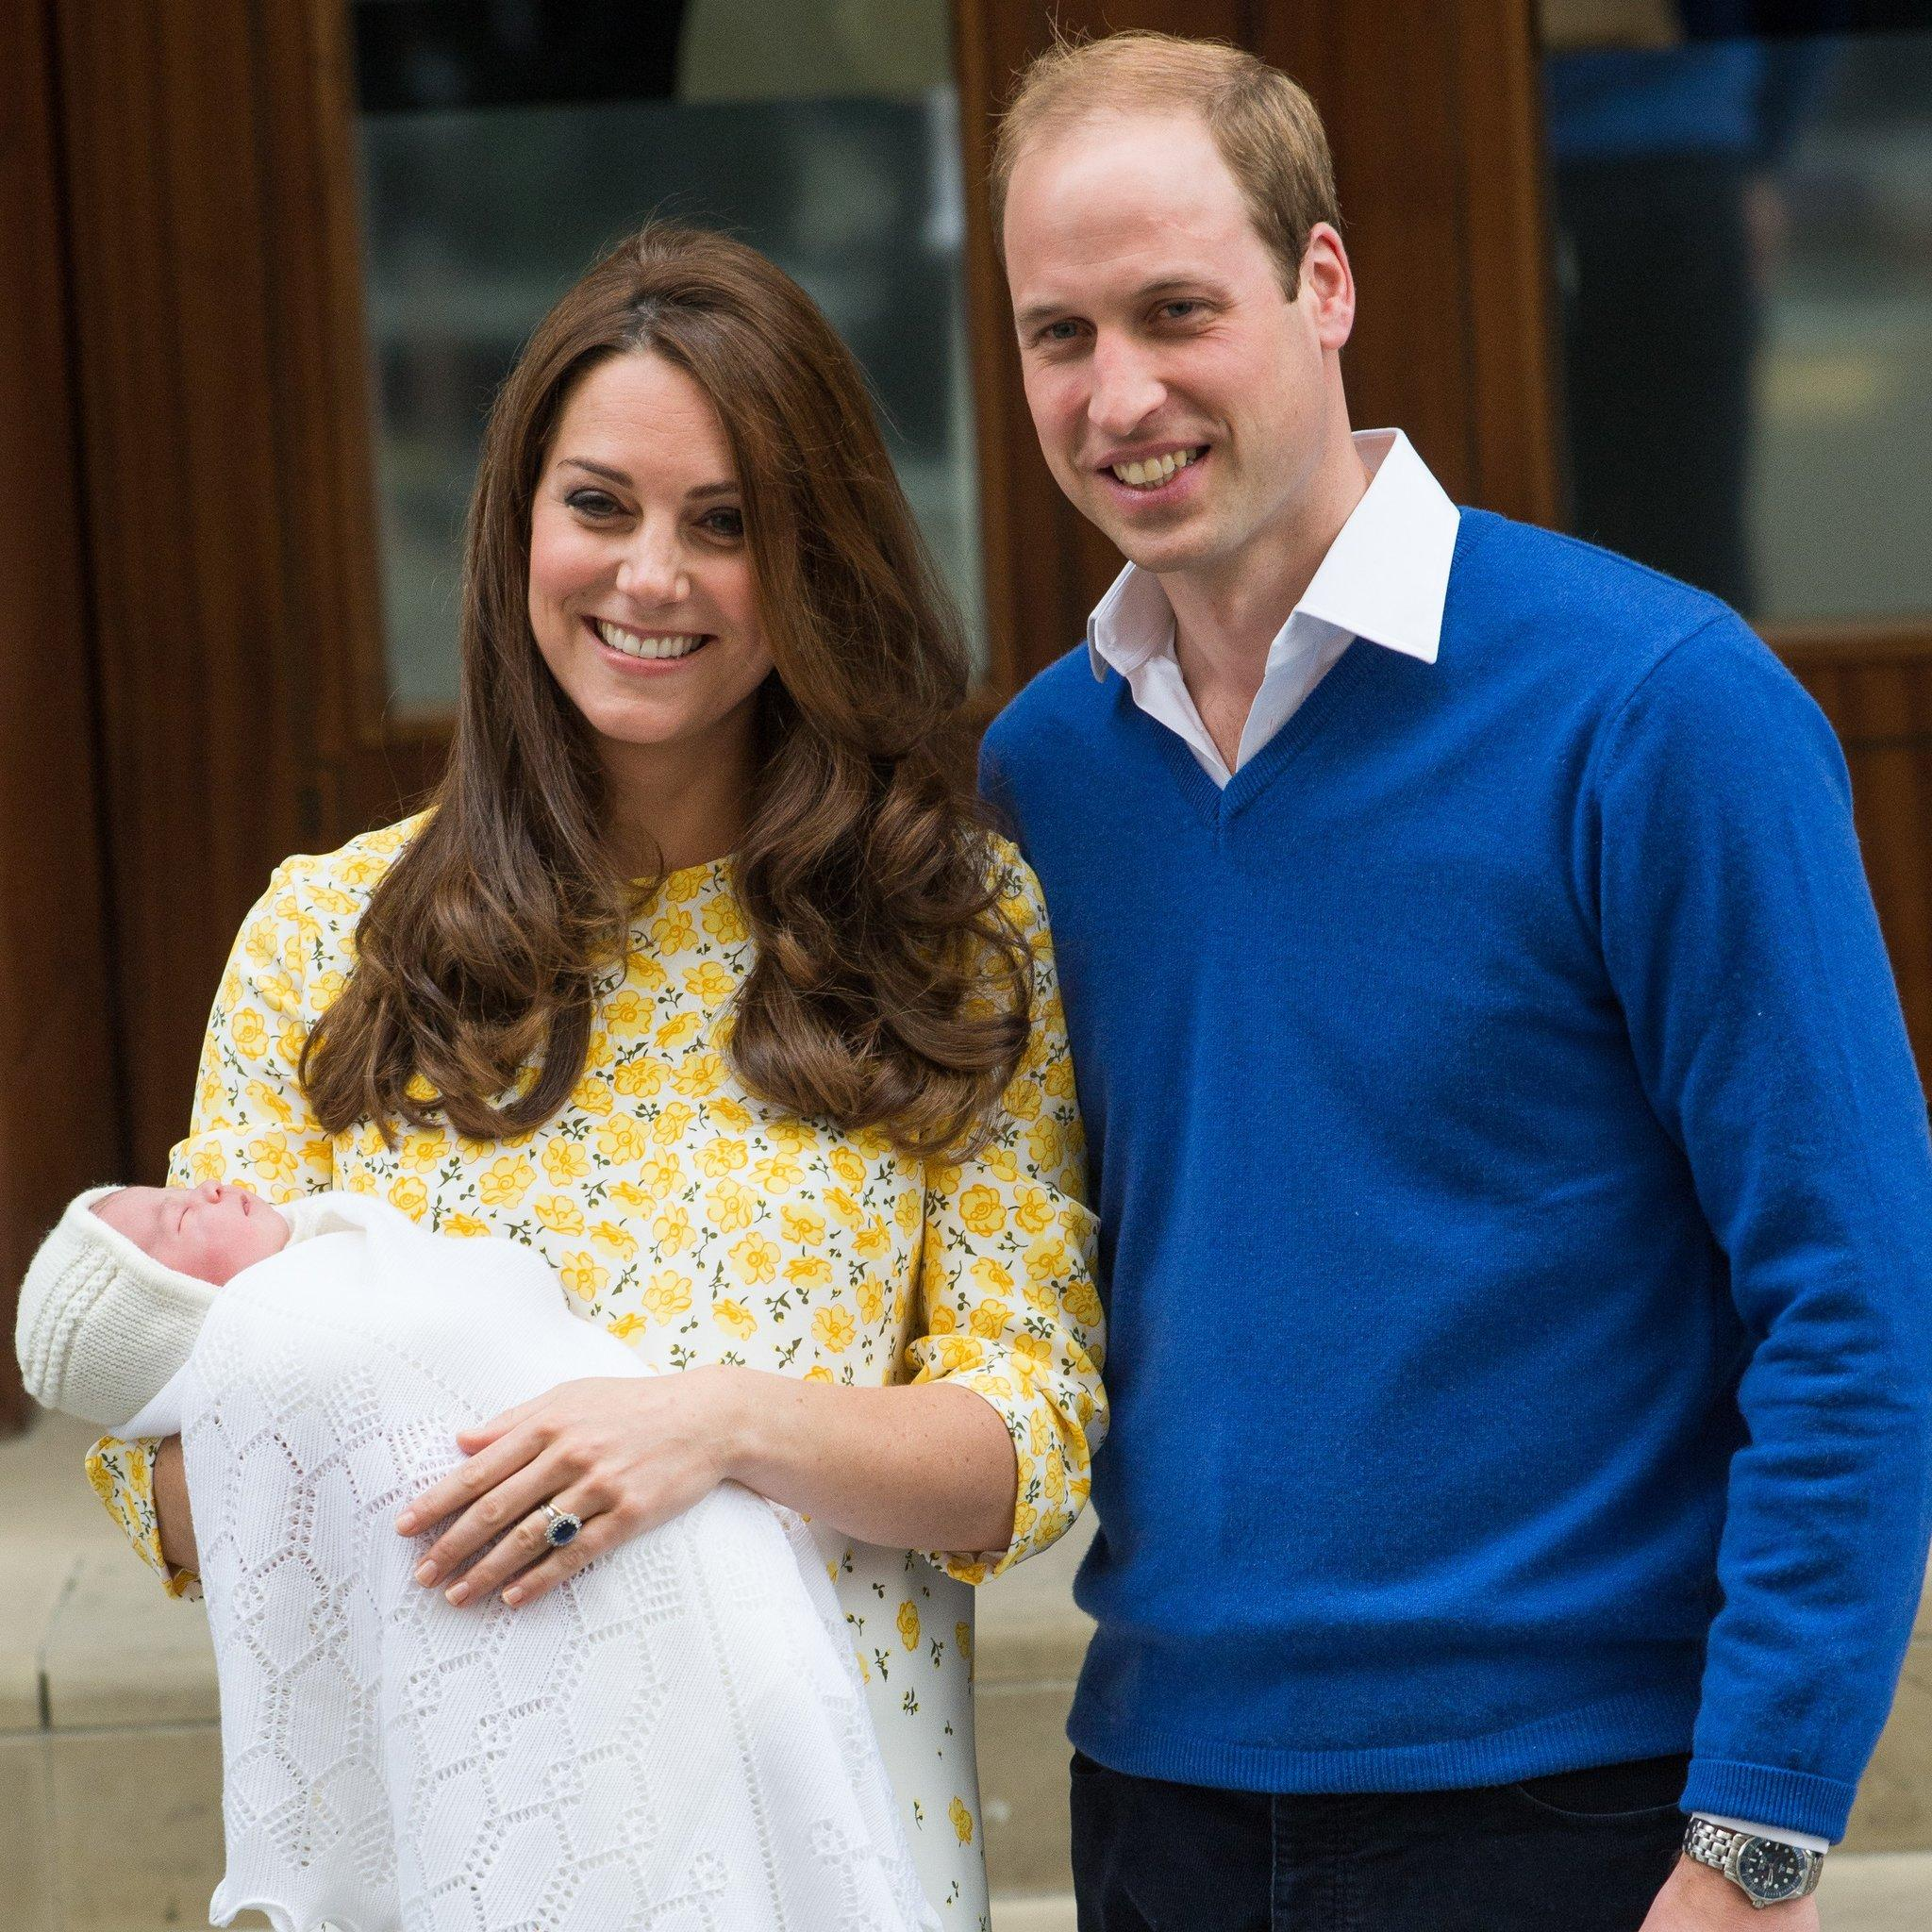 Does Kate Middleton Breastfeed? Here's What We Know